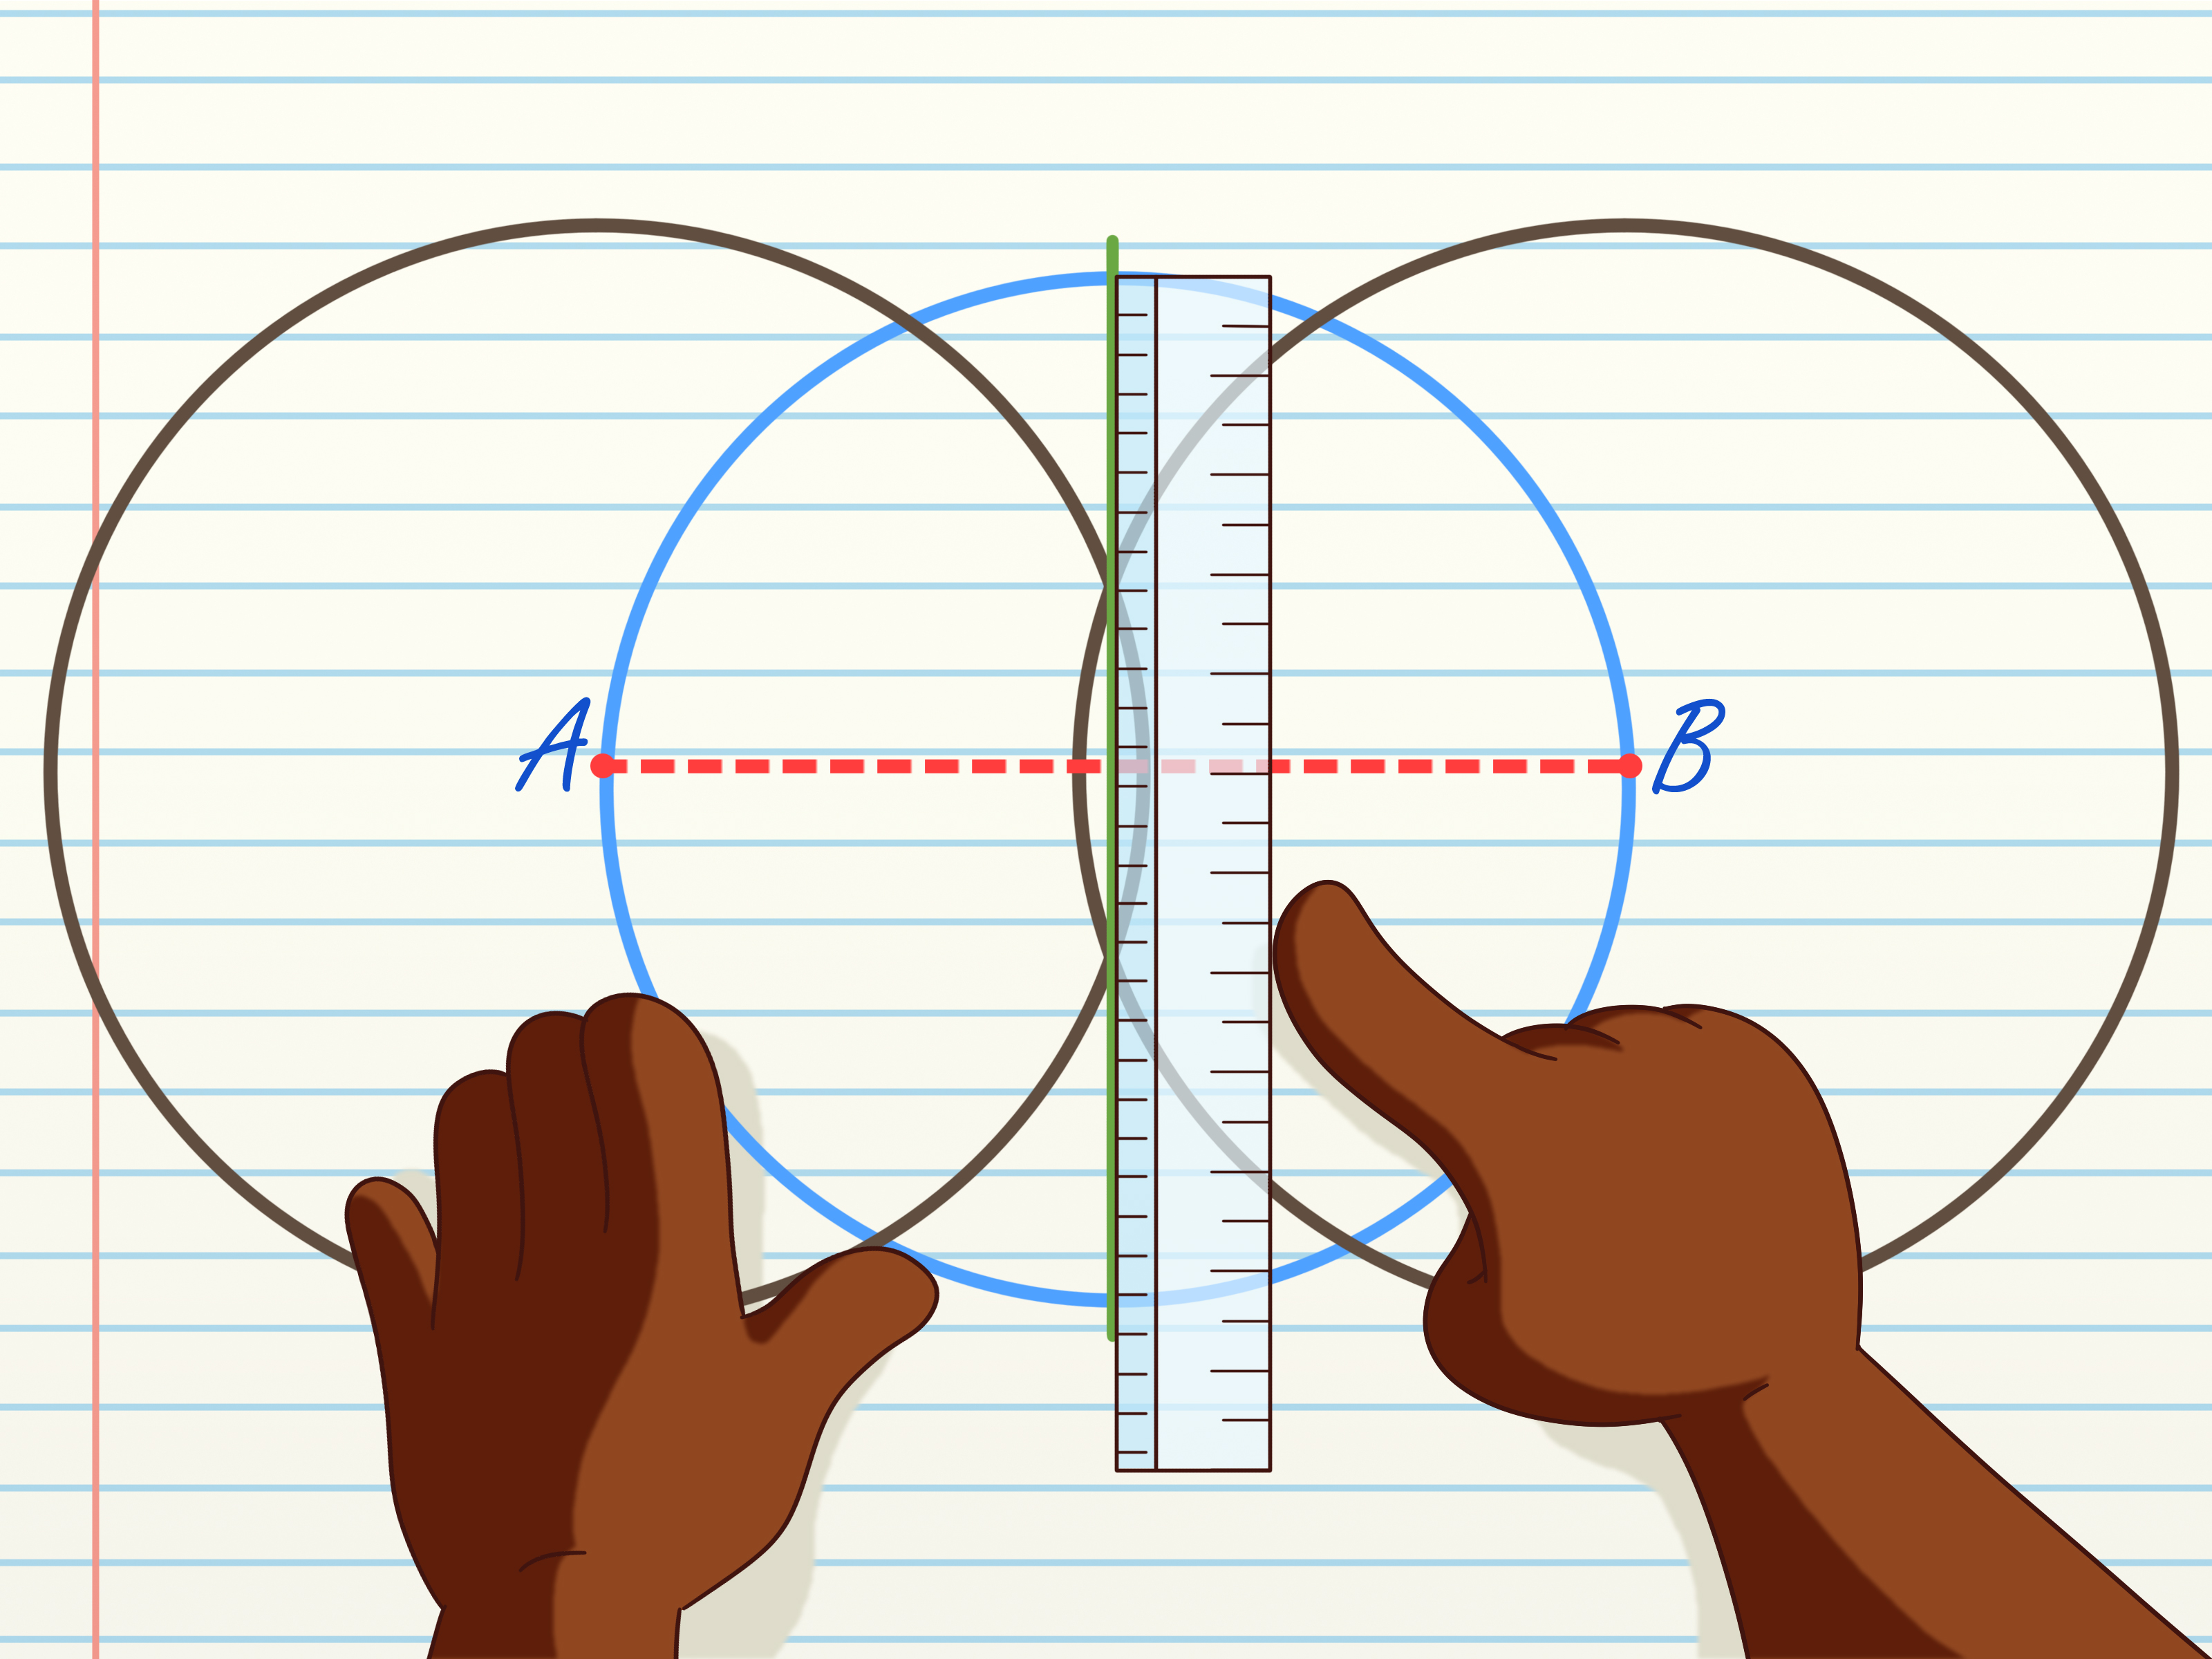 How To Find The Diameter Of A Circle